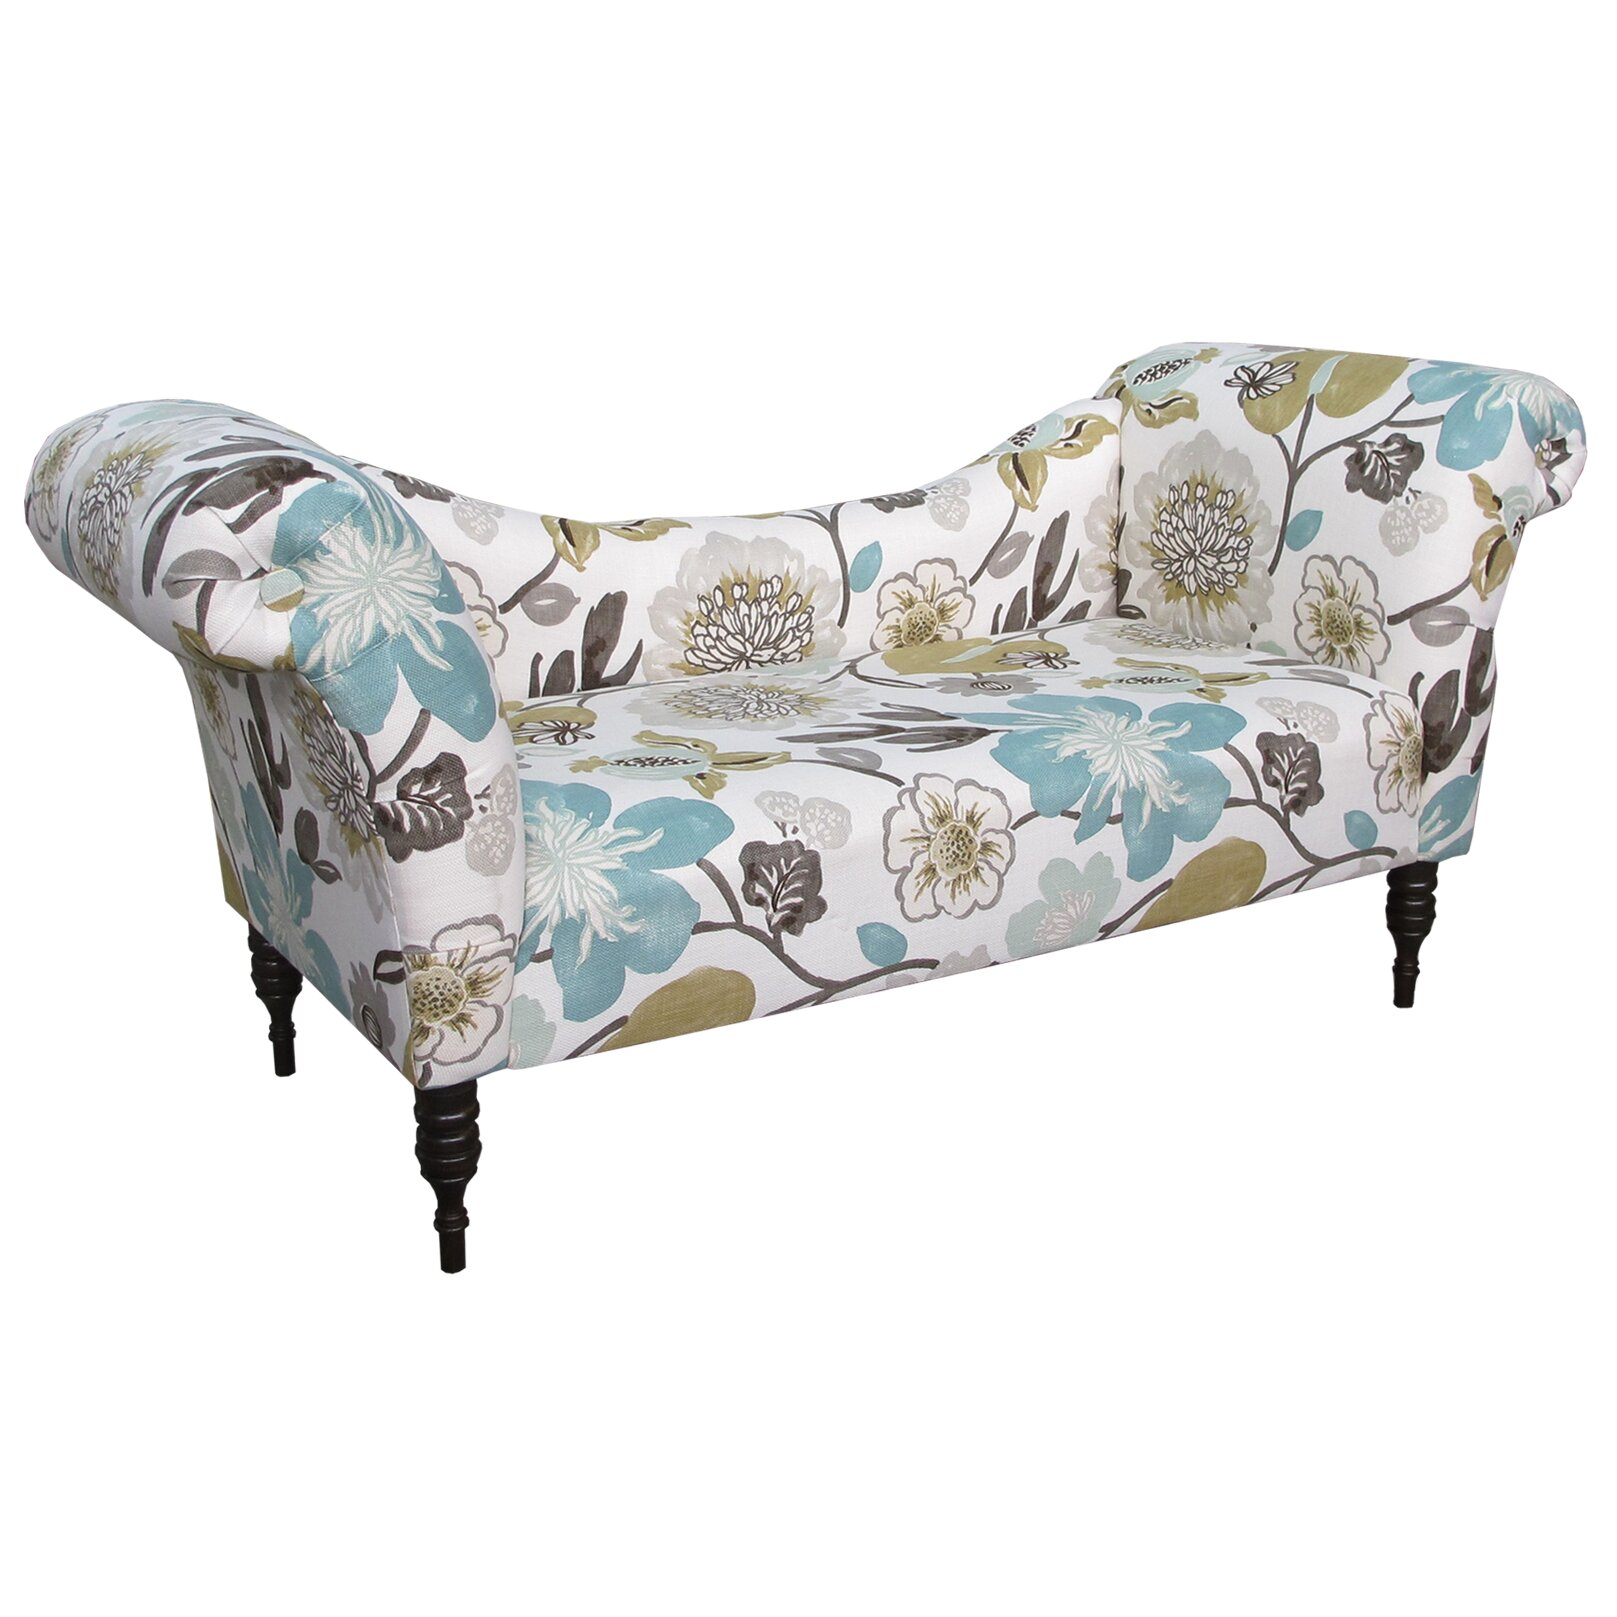 Skyline Furniture Gorgeous Roll Arm Chaise Lounge & Reviews